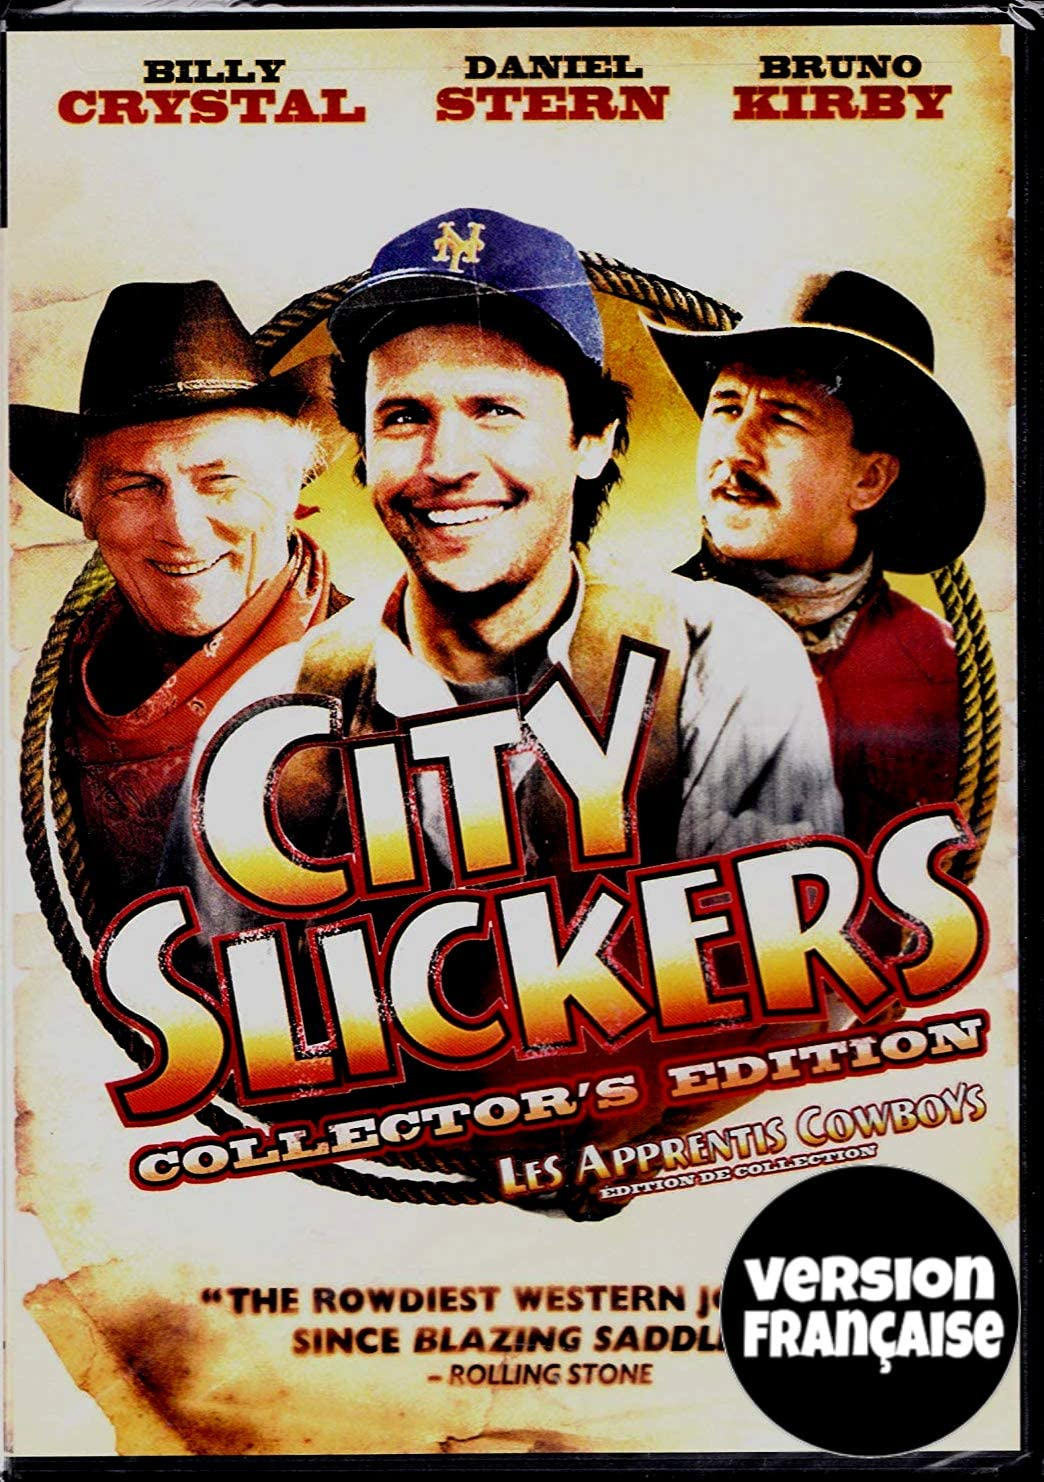 Les Apprentis Cowboys City Slickers English French 1991 Widescreen Regie Au Quebec Cover Bilingue Edition De Collection Amazon Ca Billy Crystal Daniel Stern Bruno Kirby Jack Palance Ron Underwood Dvd